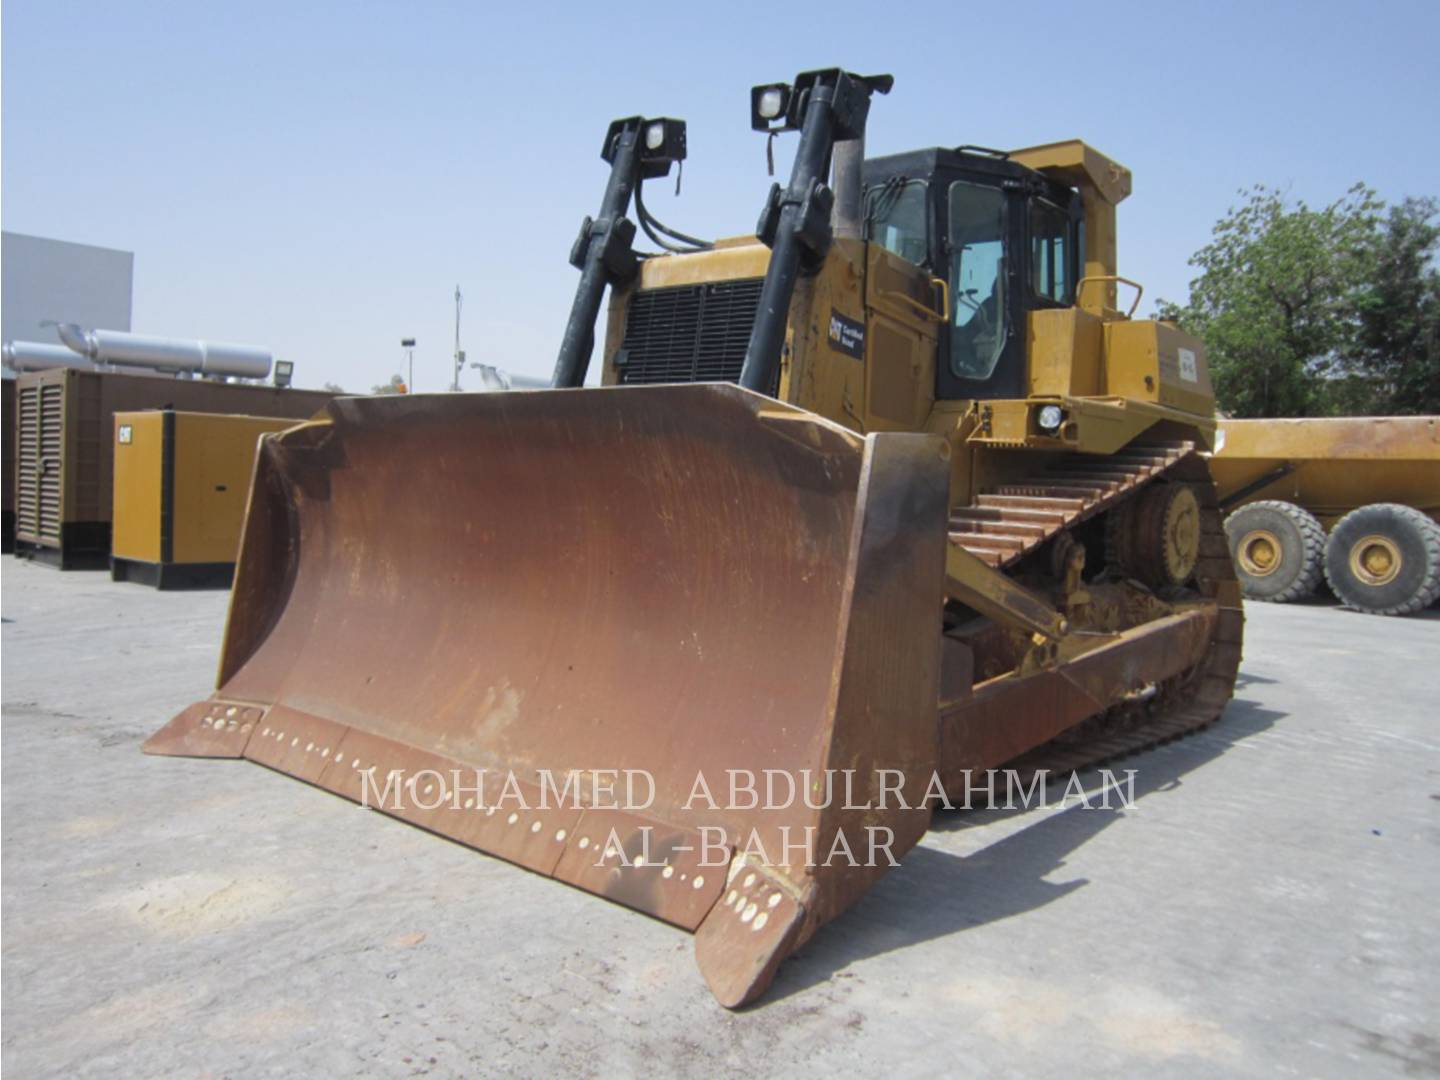 Model # D 9 R - skid steer loaders